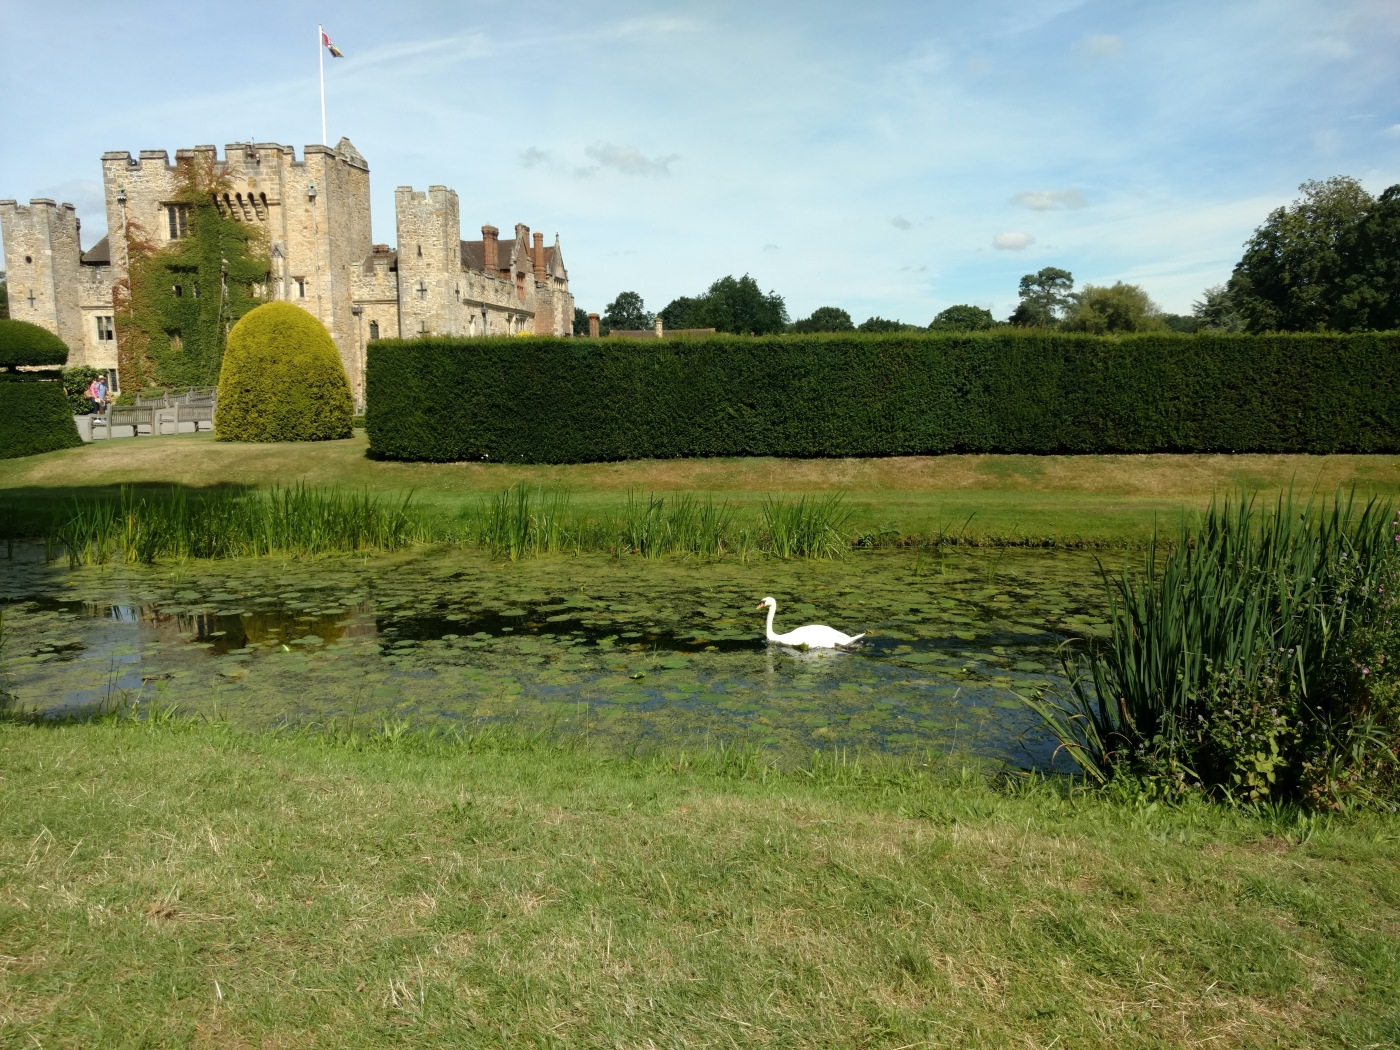 A swan at Hever Castle